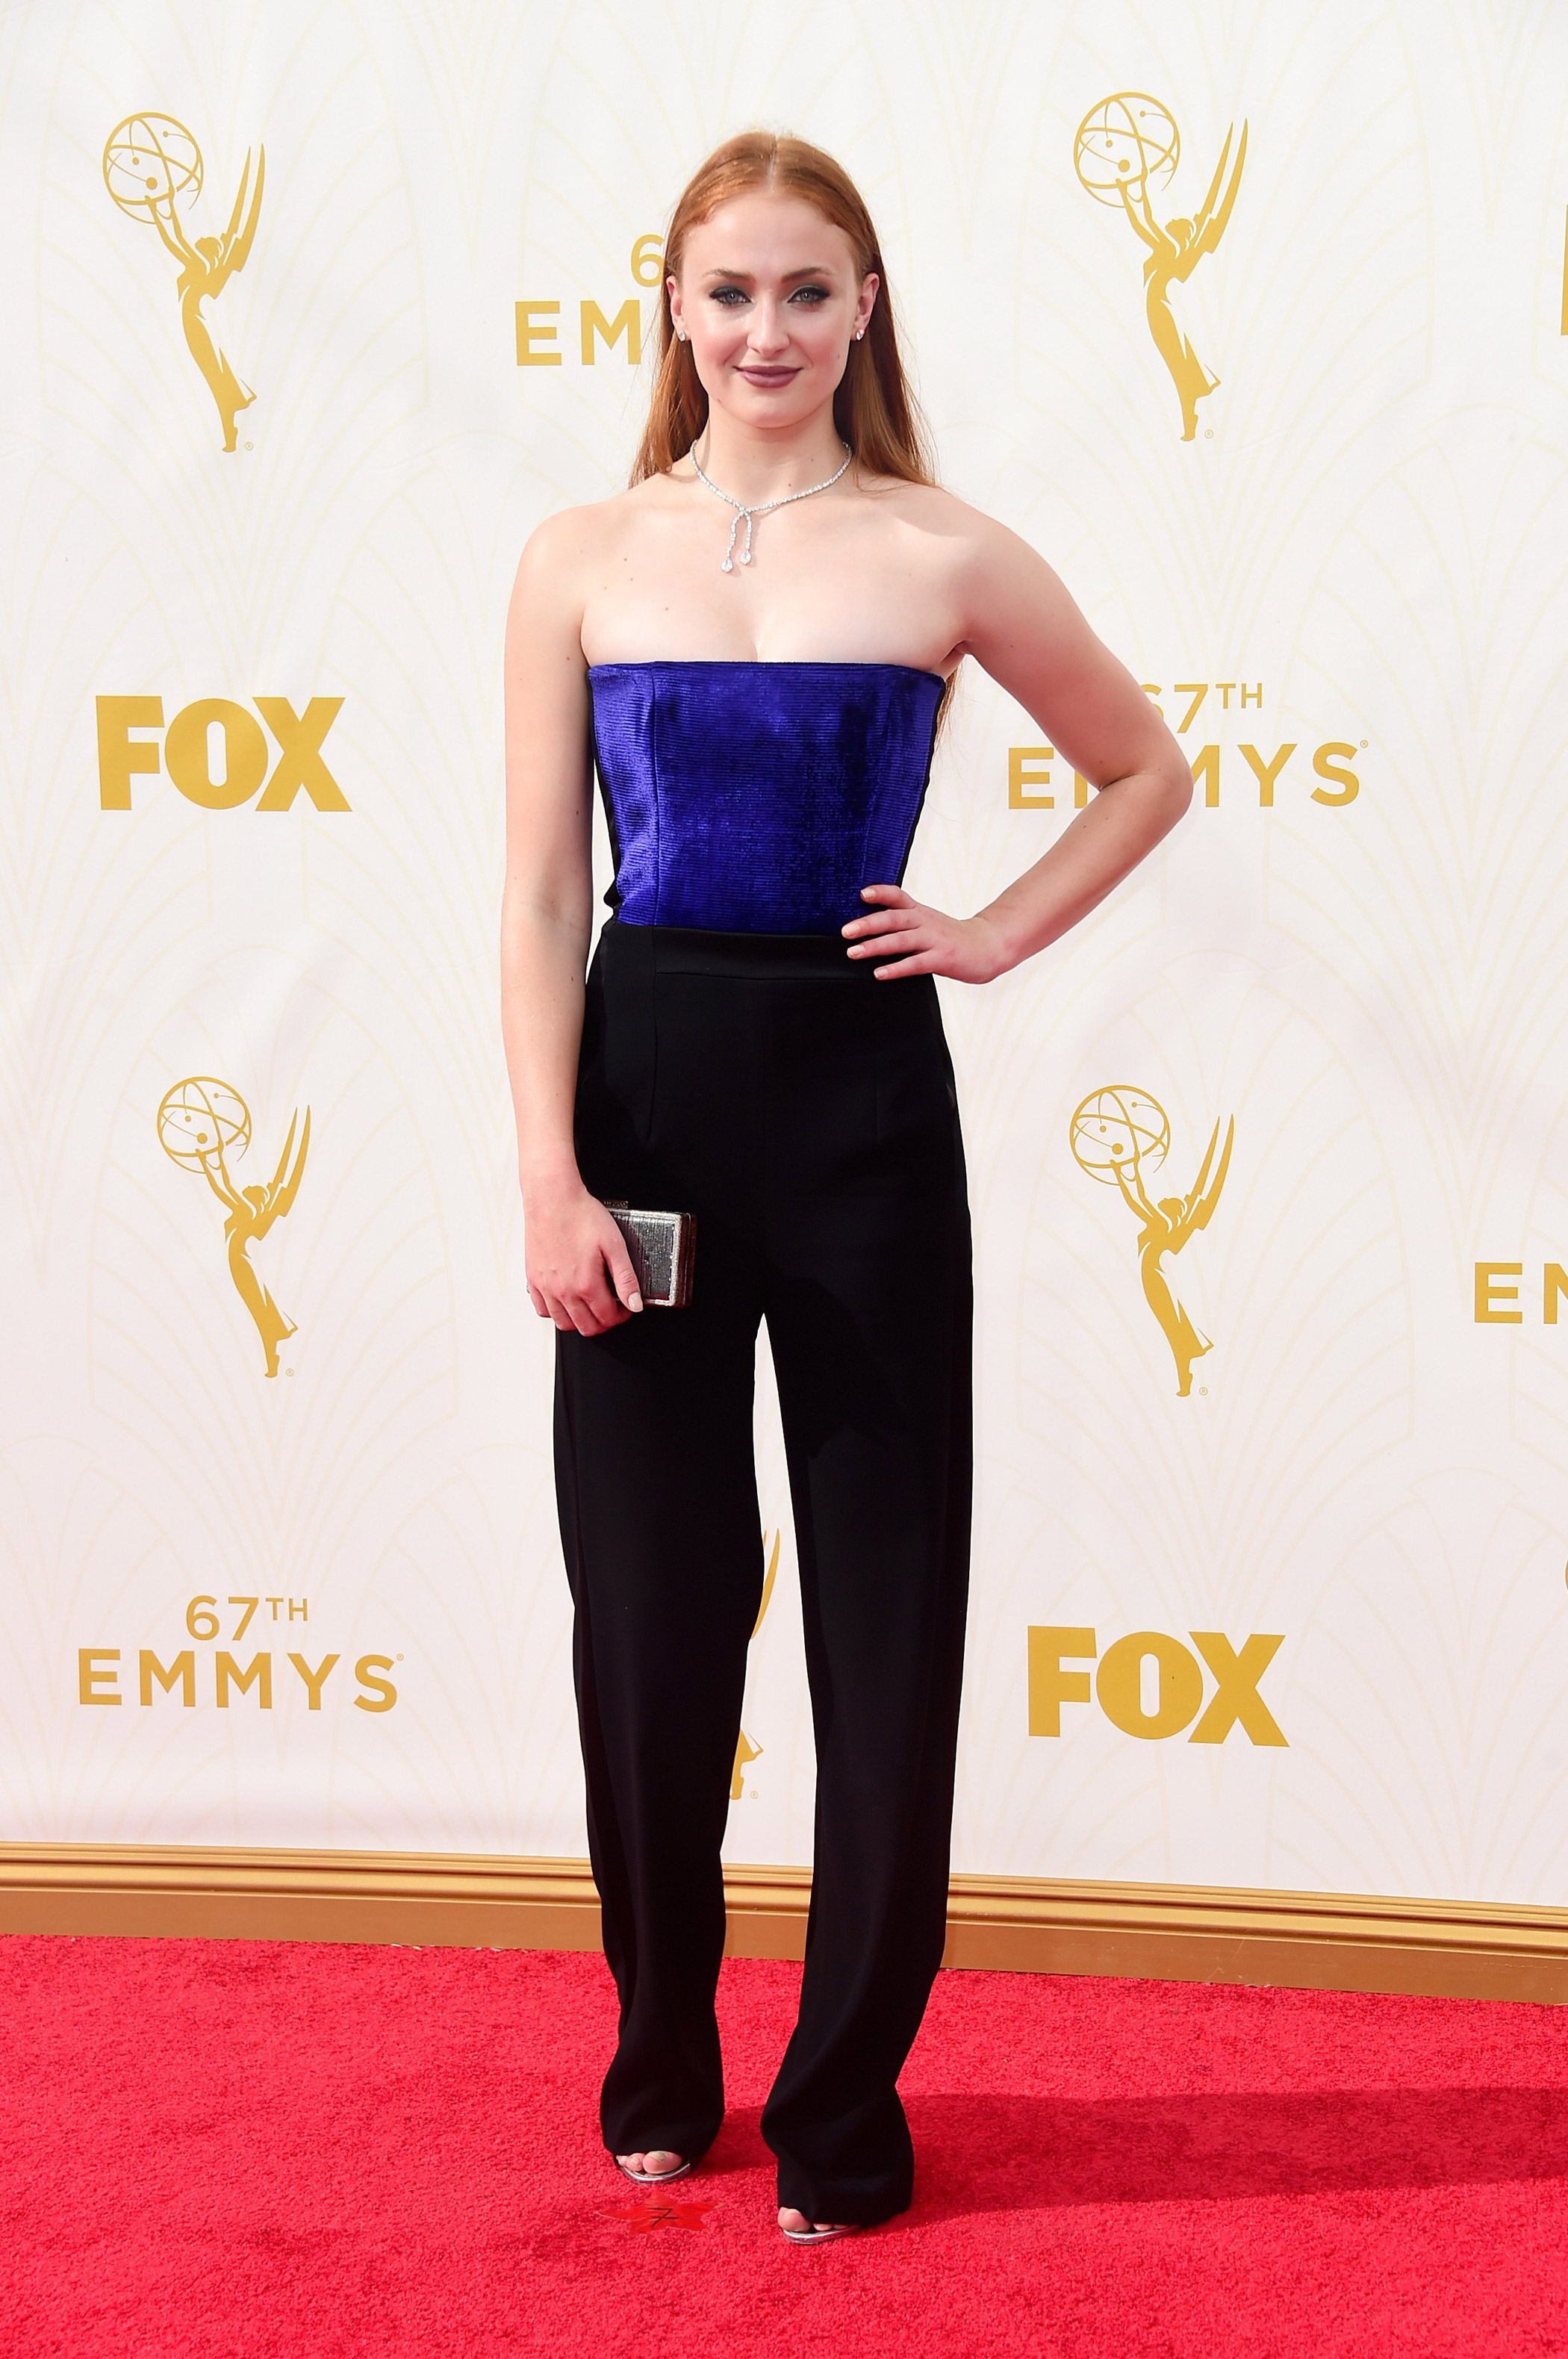 Sophie Turner at the 67th Emmy Award on Sept. 20, 2015 in Los Angeles.